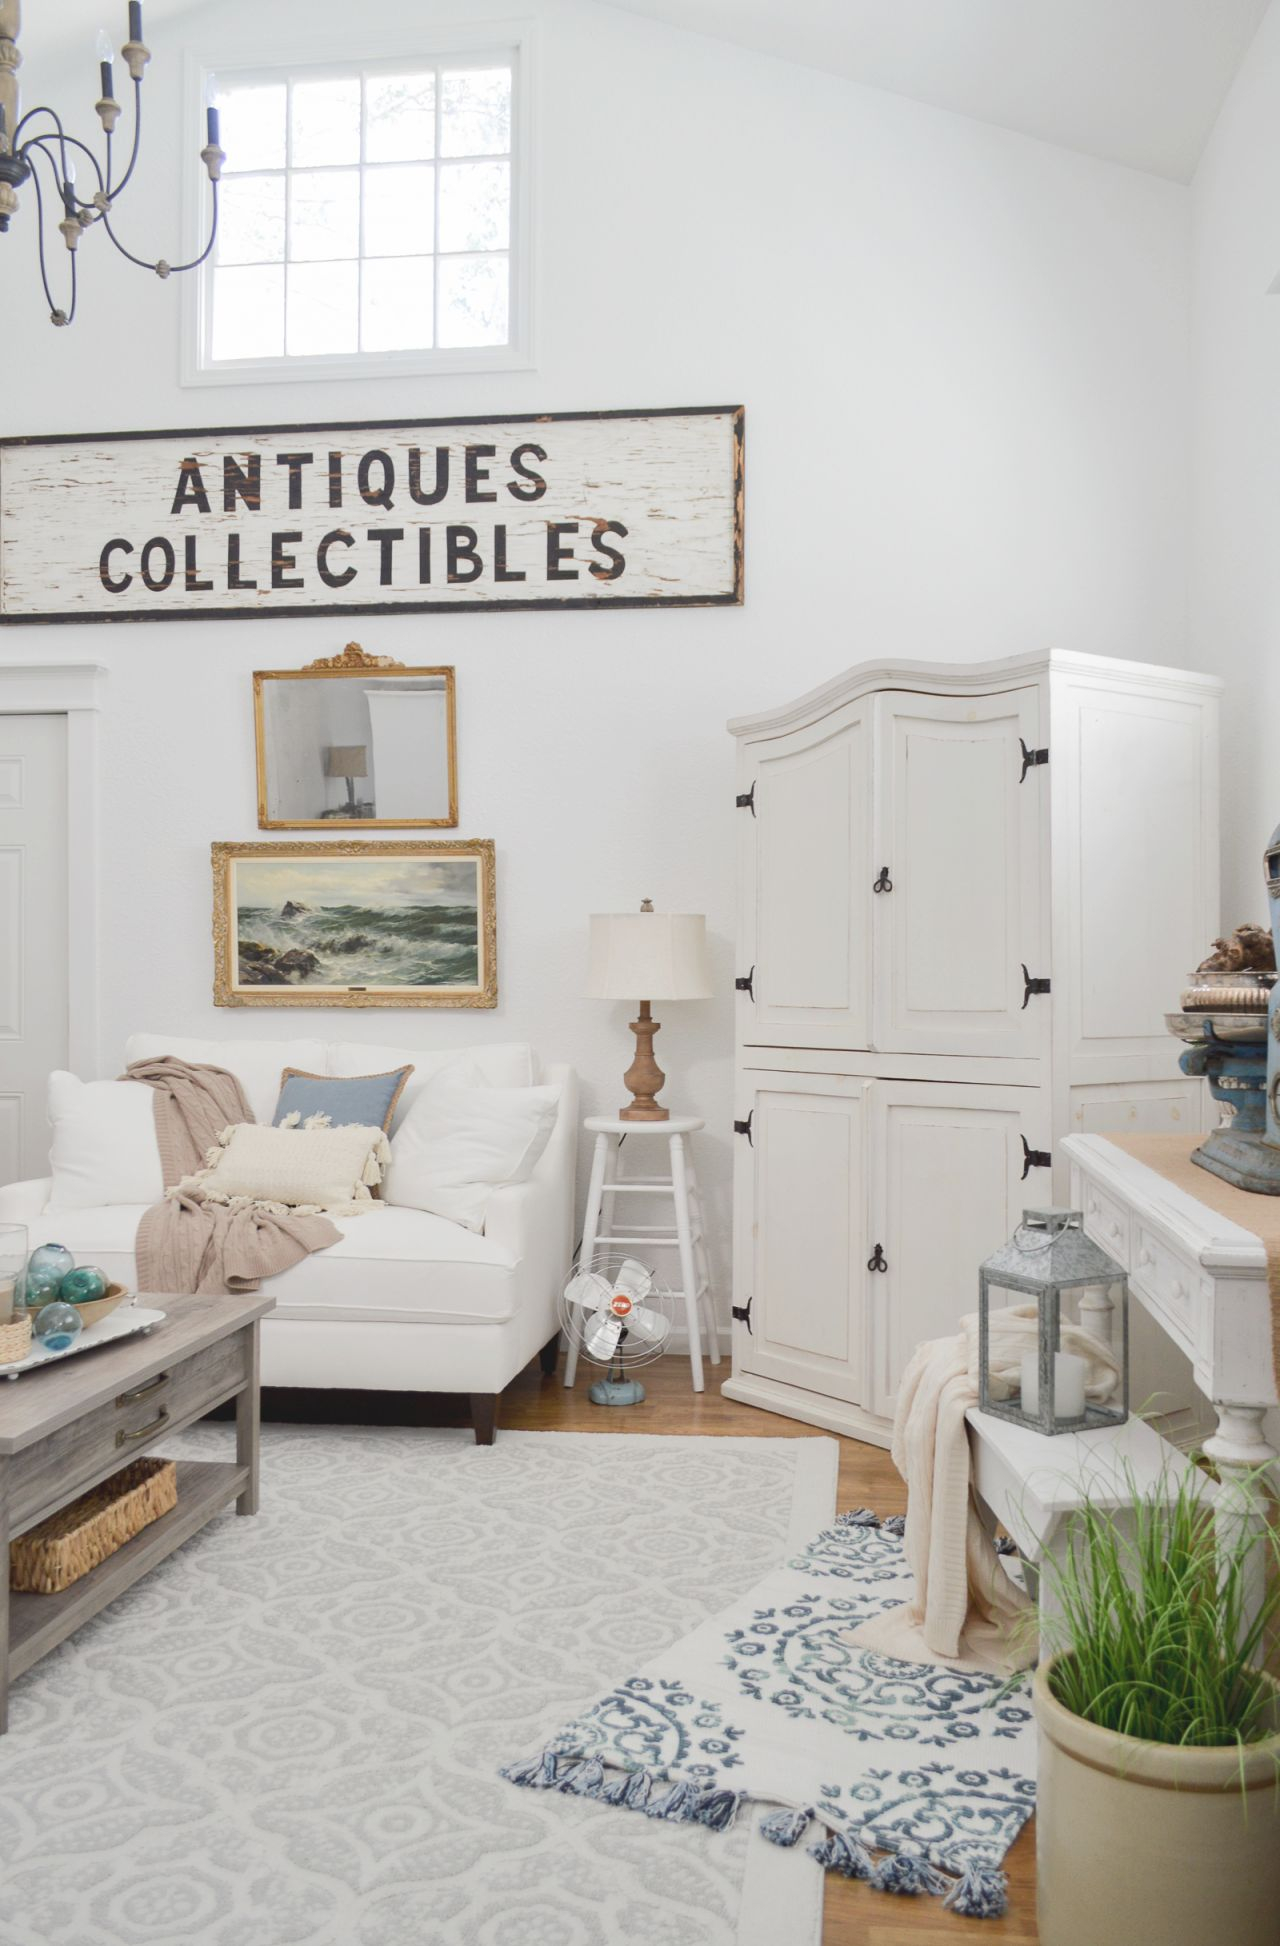 New Home Decorating Tips And Ideas Fox Hollow Cottage For Antique Decorating Ideas Living Room Awesome Decors,2 Bedroom Apartments For Rent Edmonton South